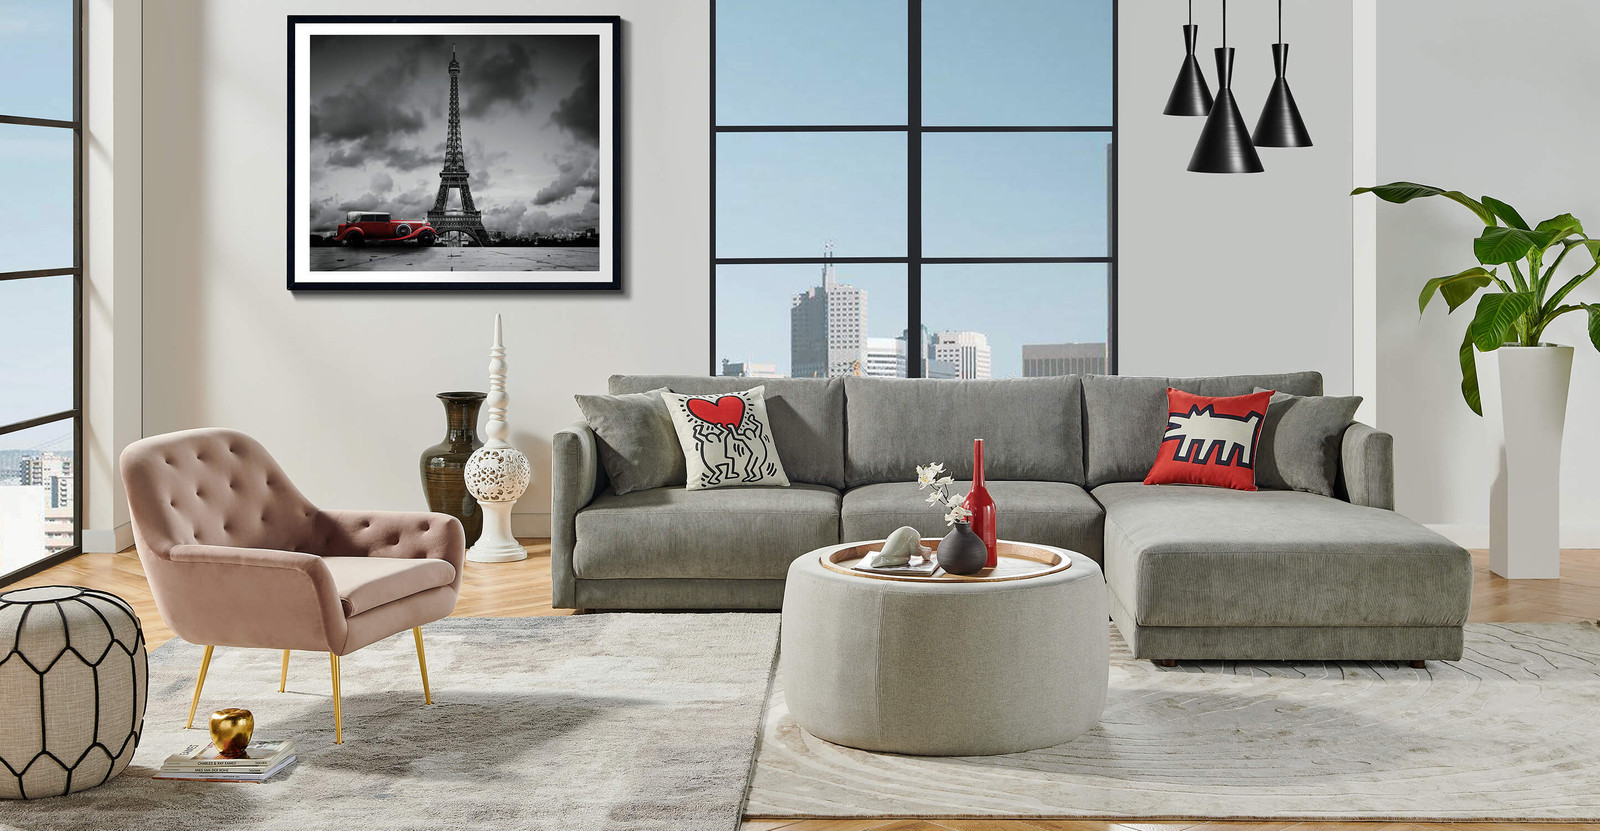 Choosing Upholstery for Your Furniture